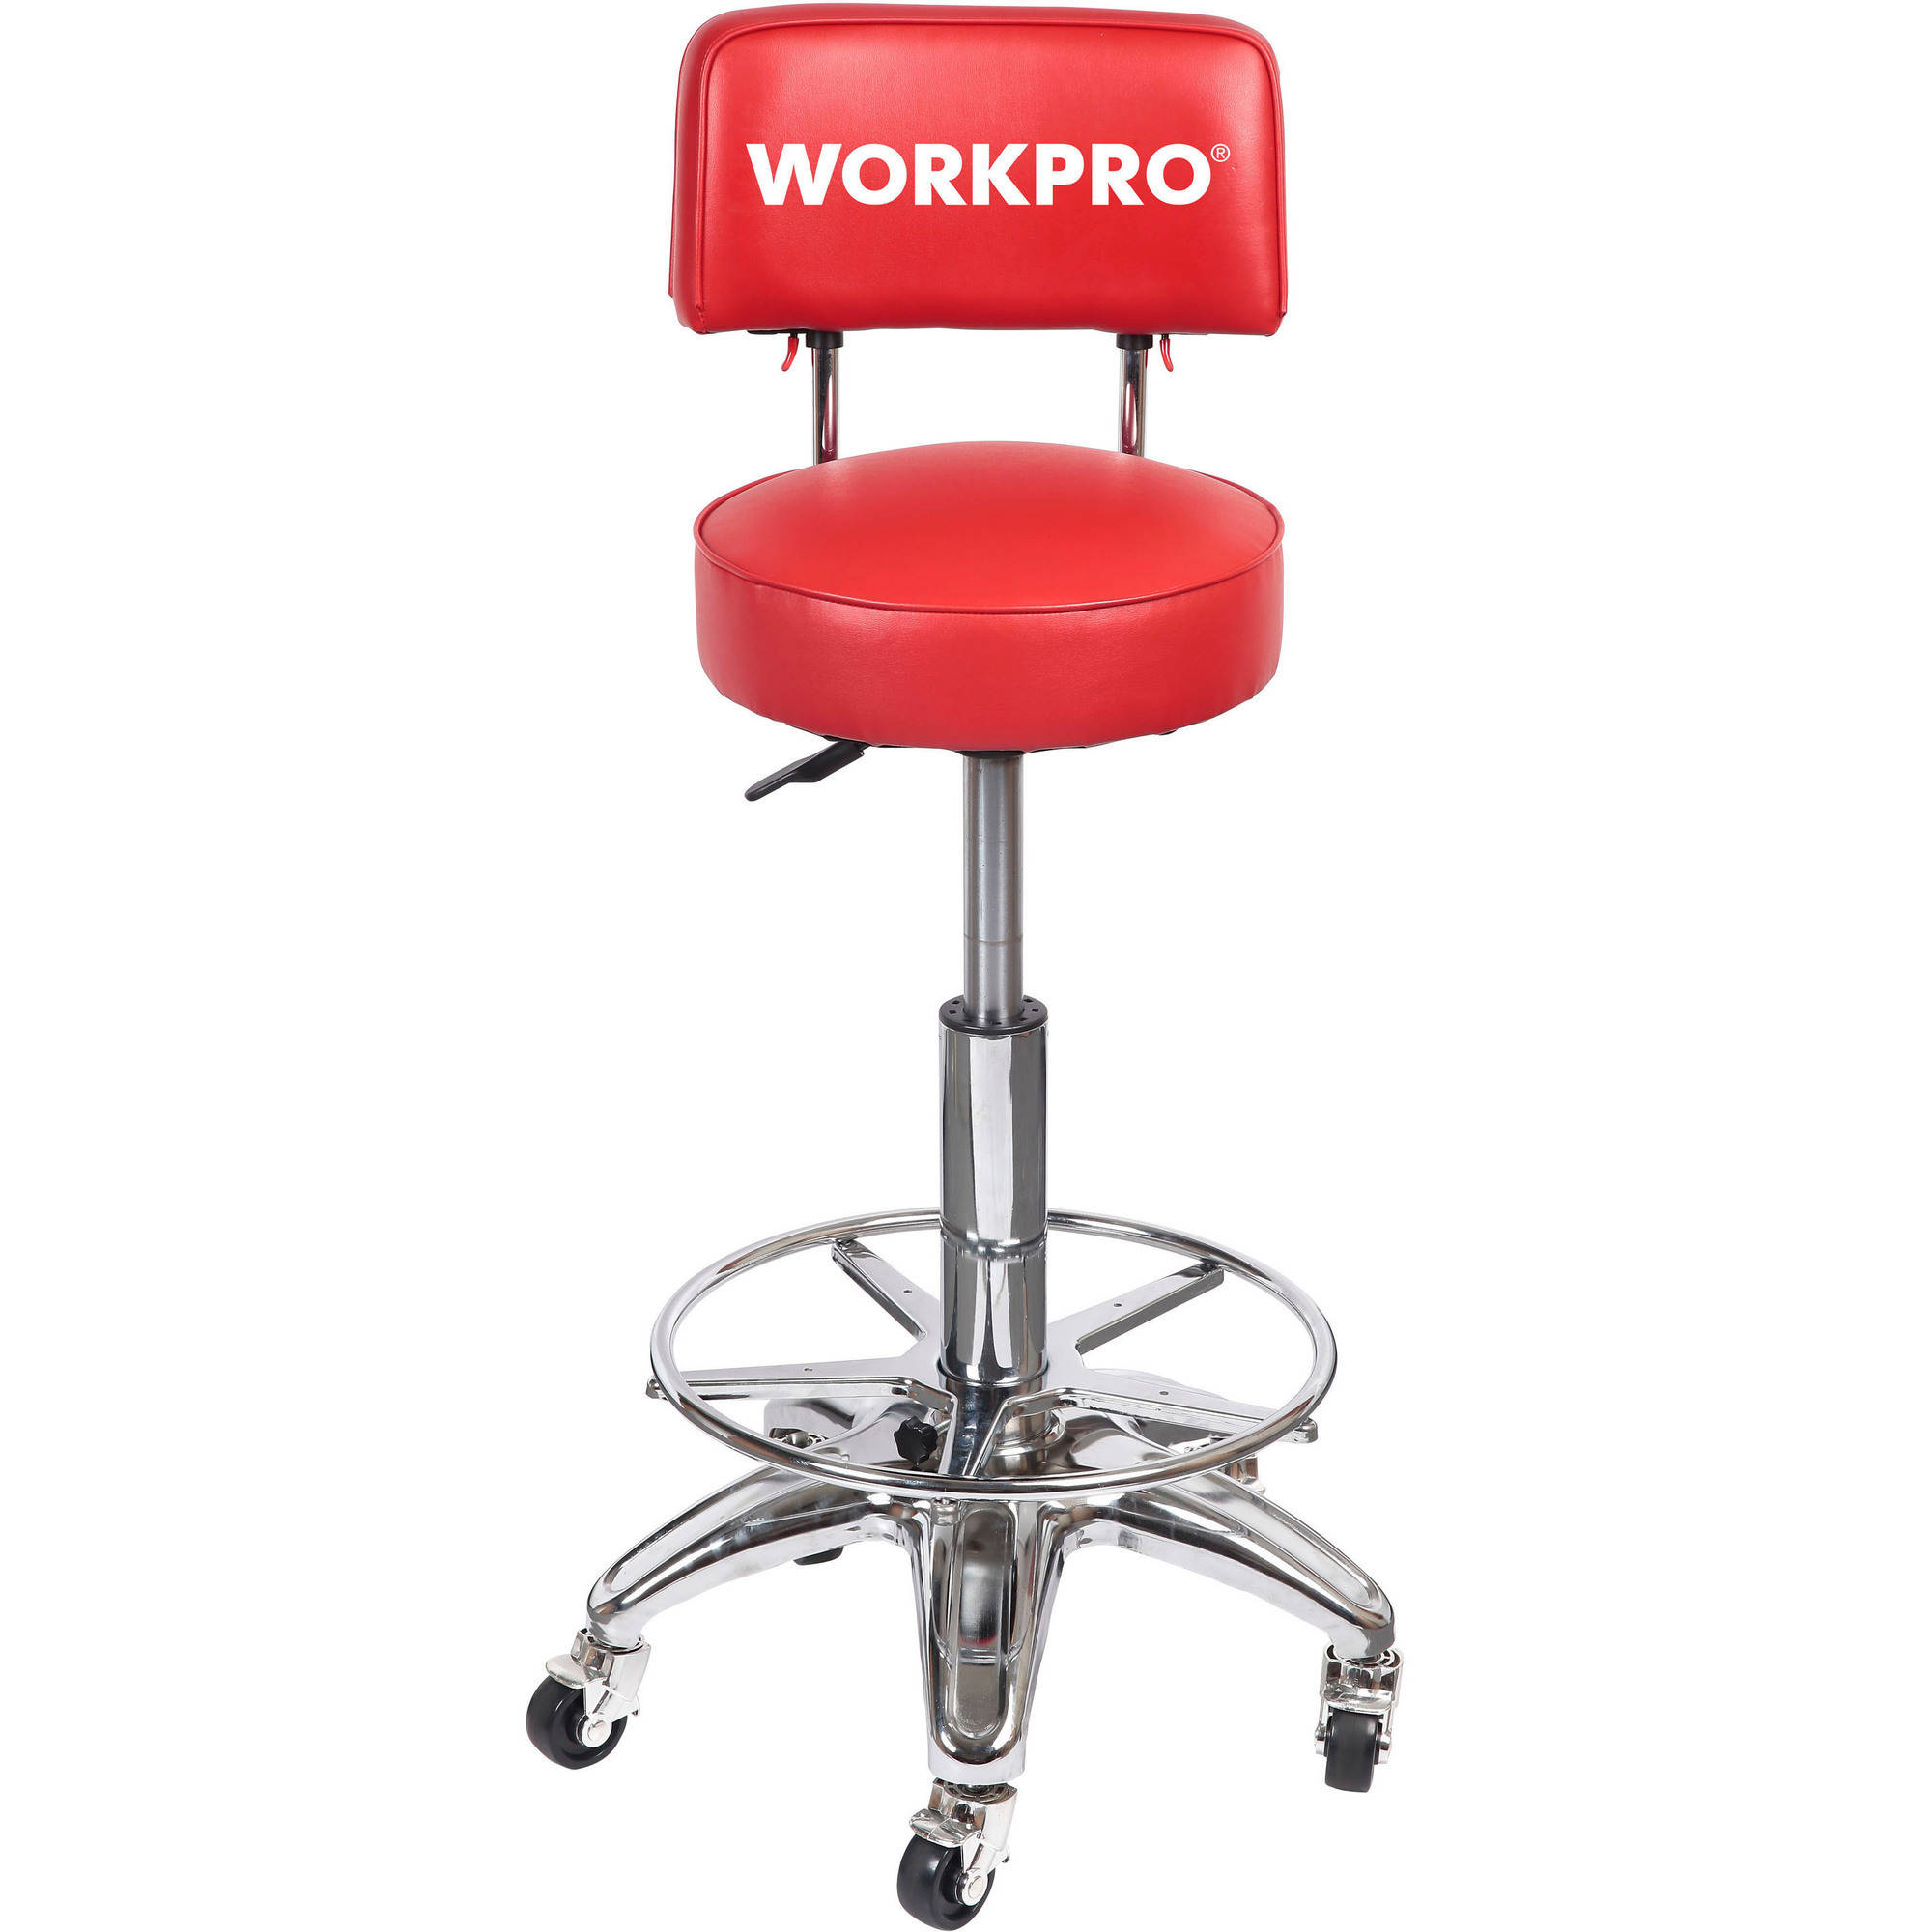 Work Pro Shop Stool   Walmart.com